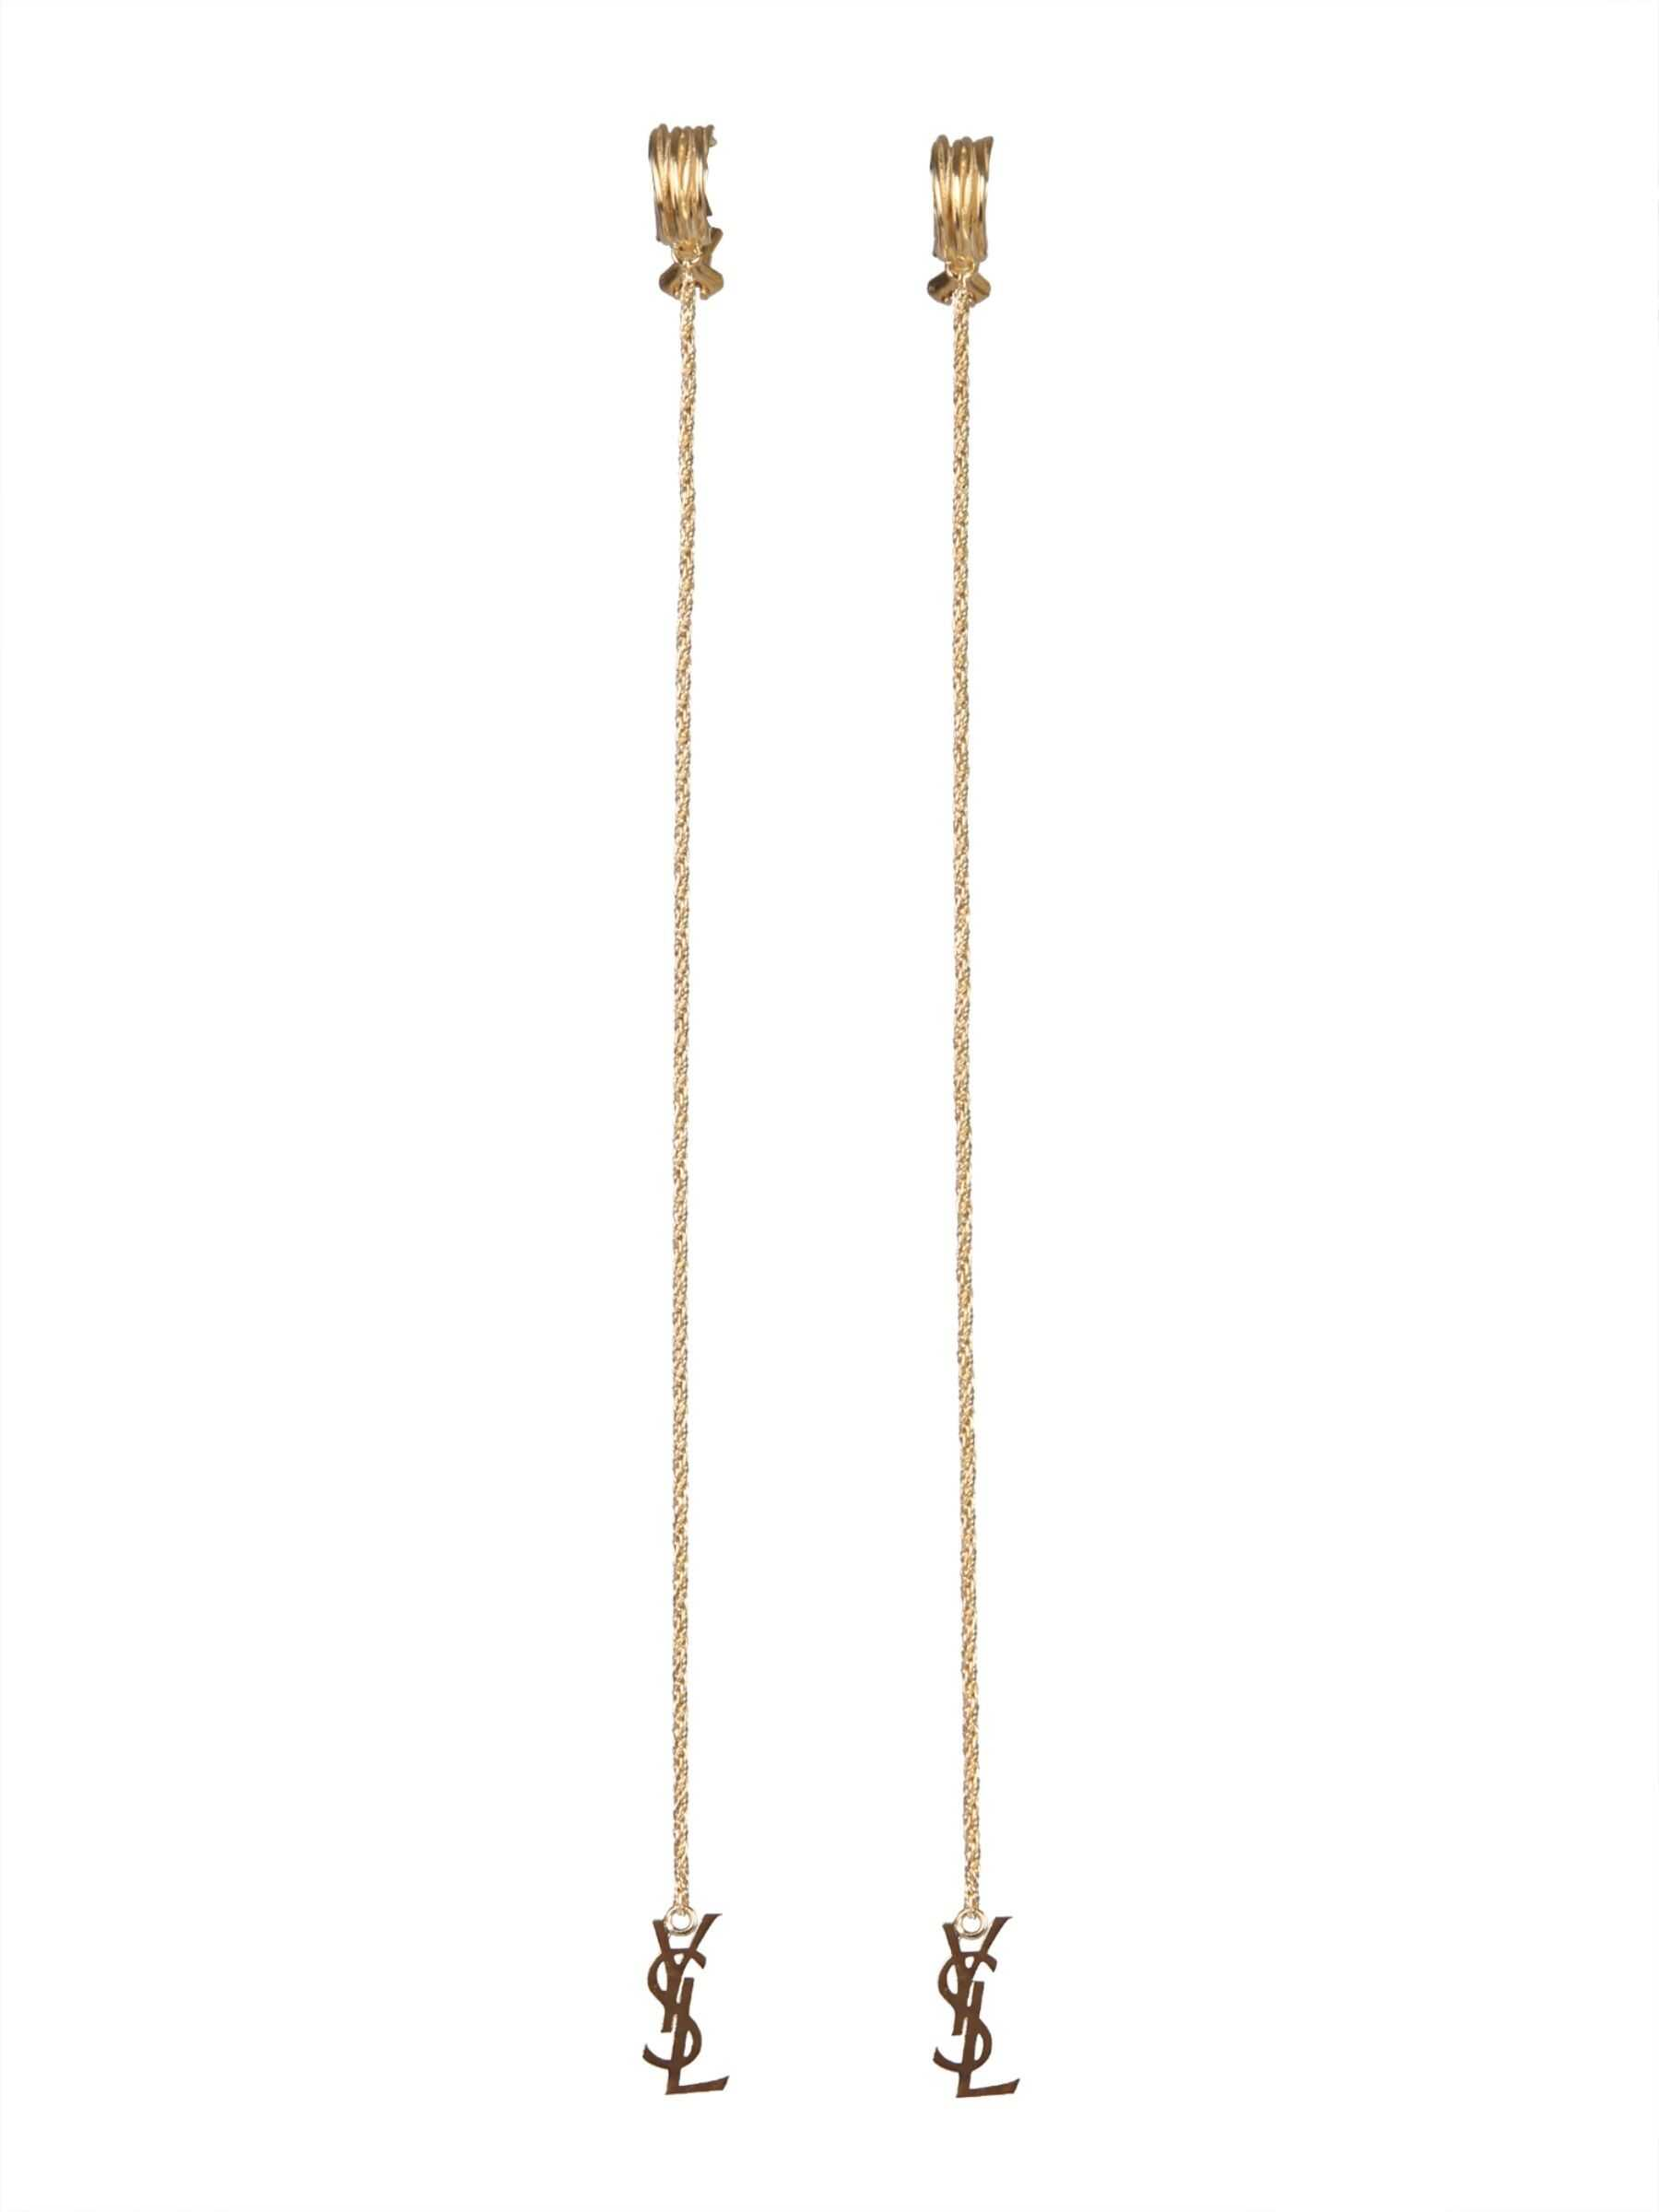 Saint Laurent Opyum Earrings GOLD